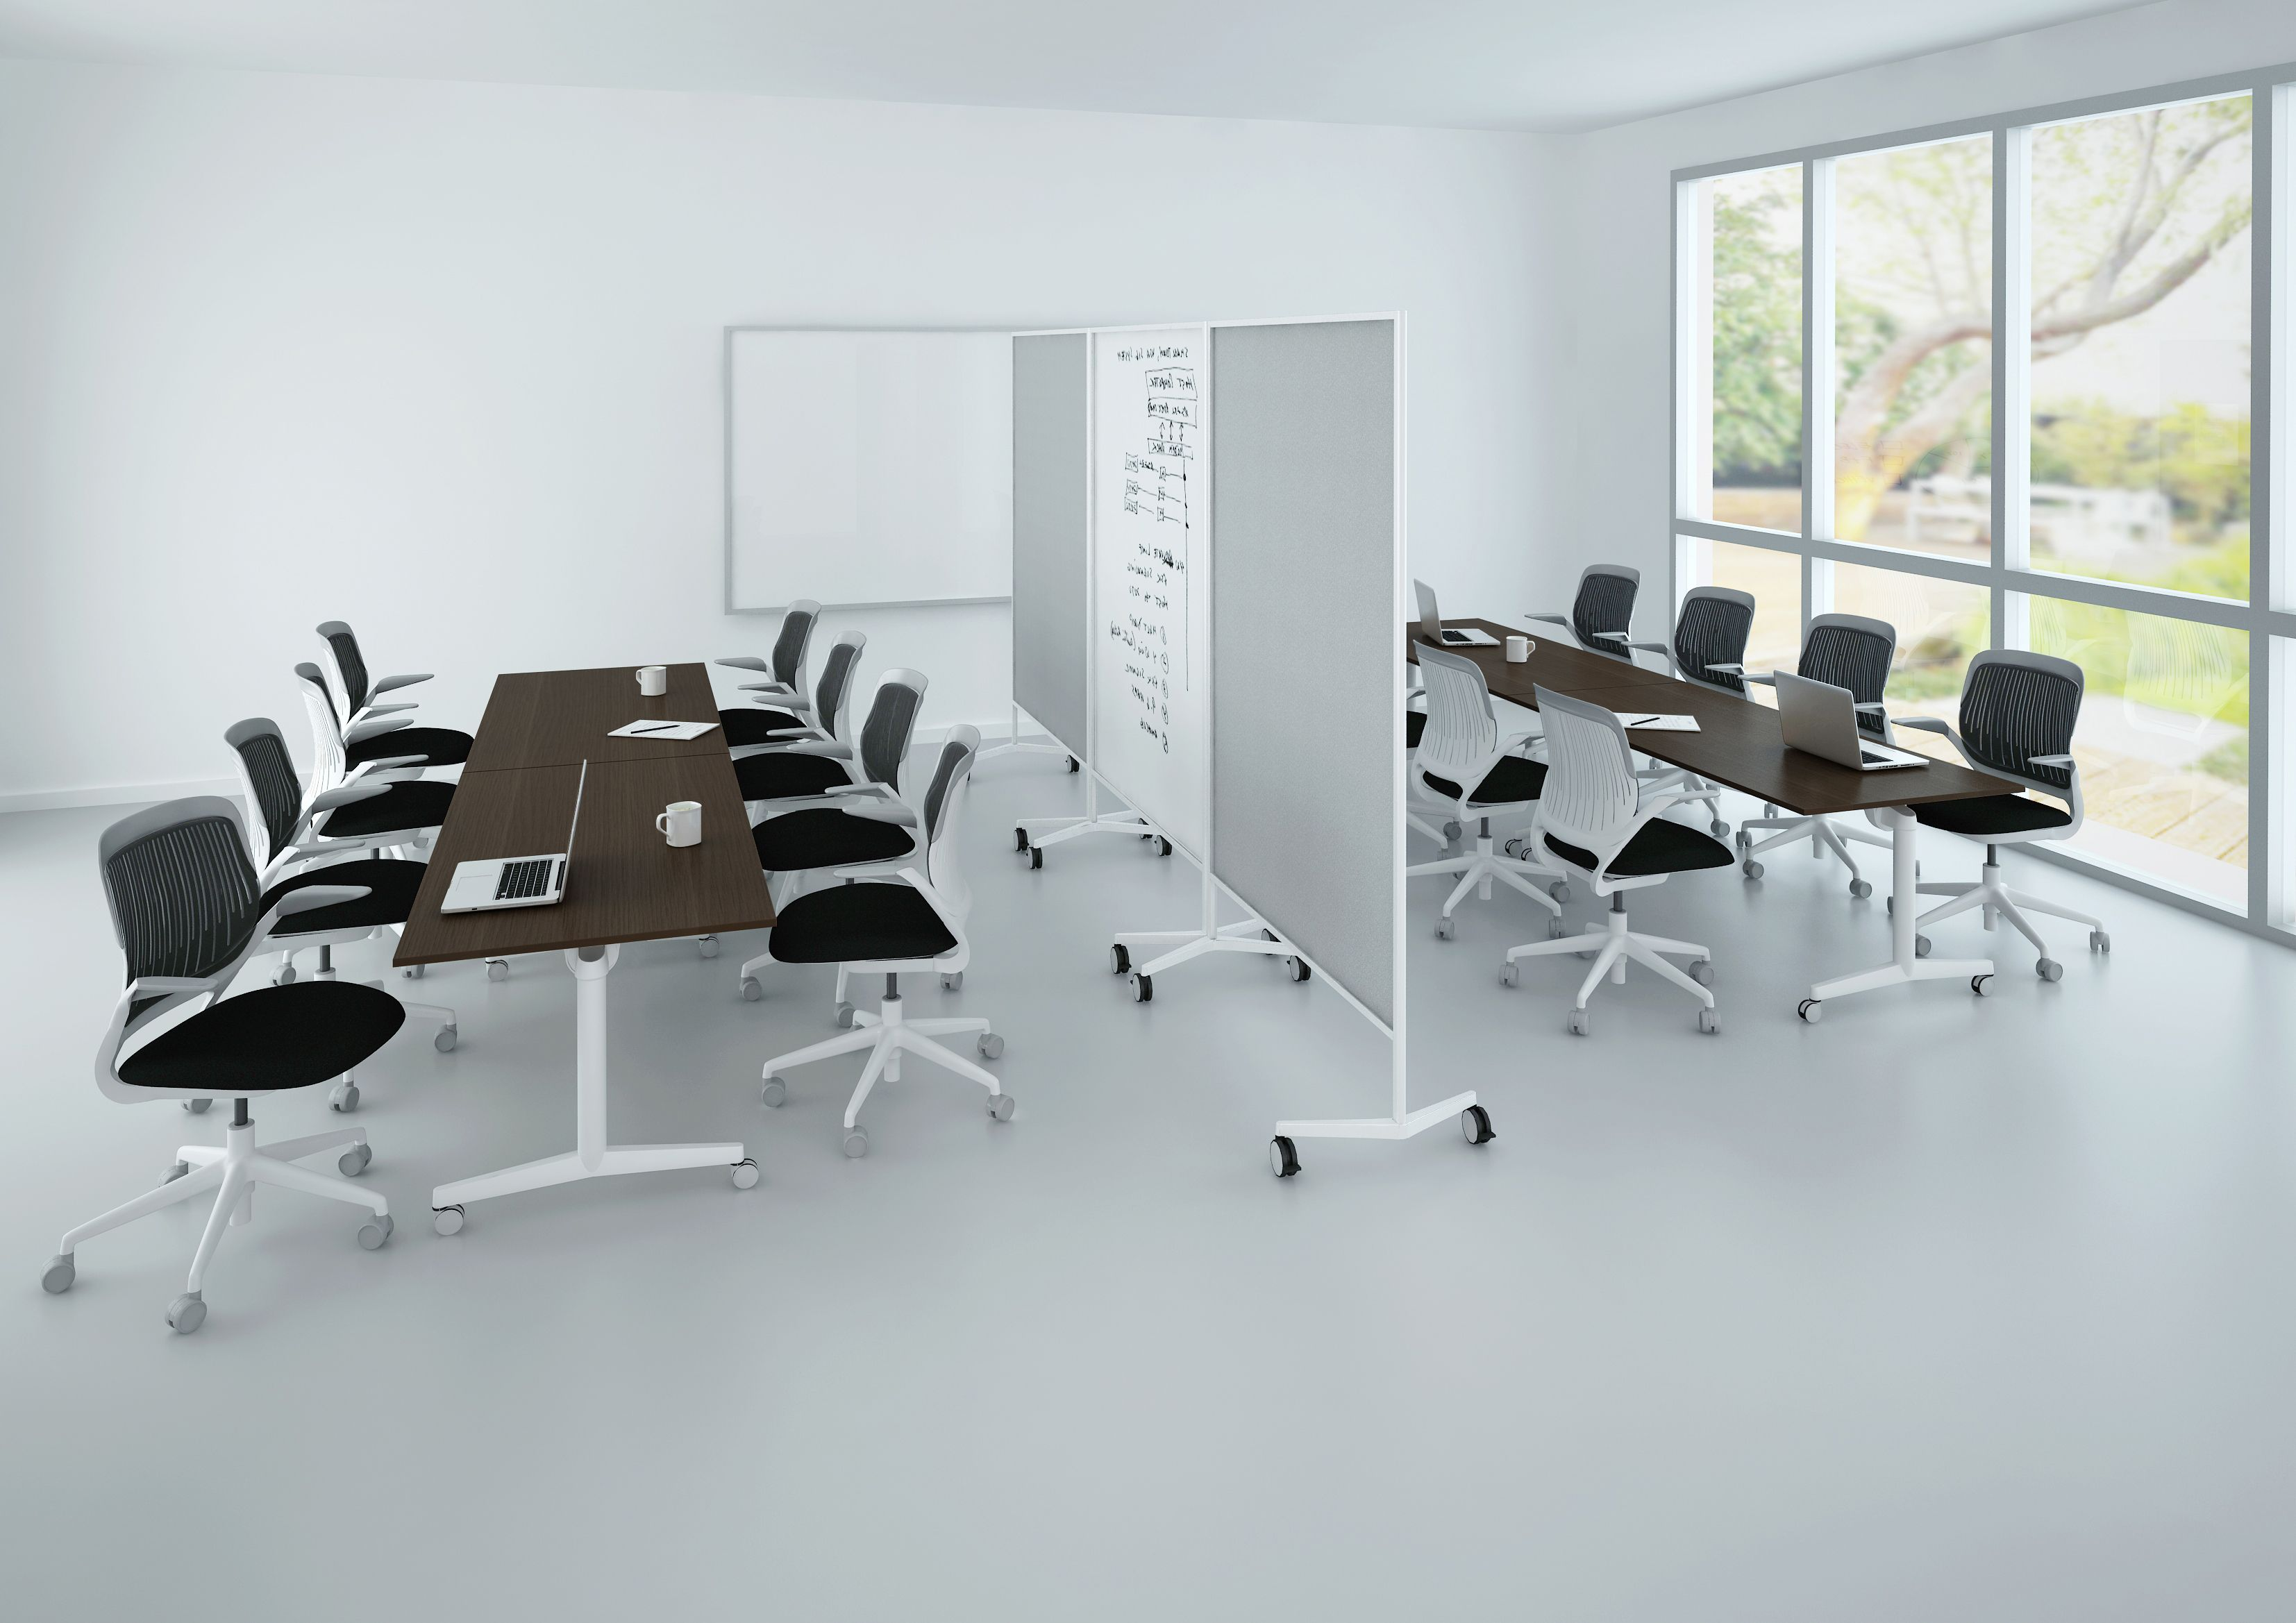 Table spoon conference table michigan state university table - Kalidro Conferencing Is An Exceptionally Flexible And Attractive Conference Table System With The Widest Possible Variety Of Configurations